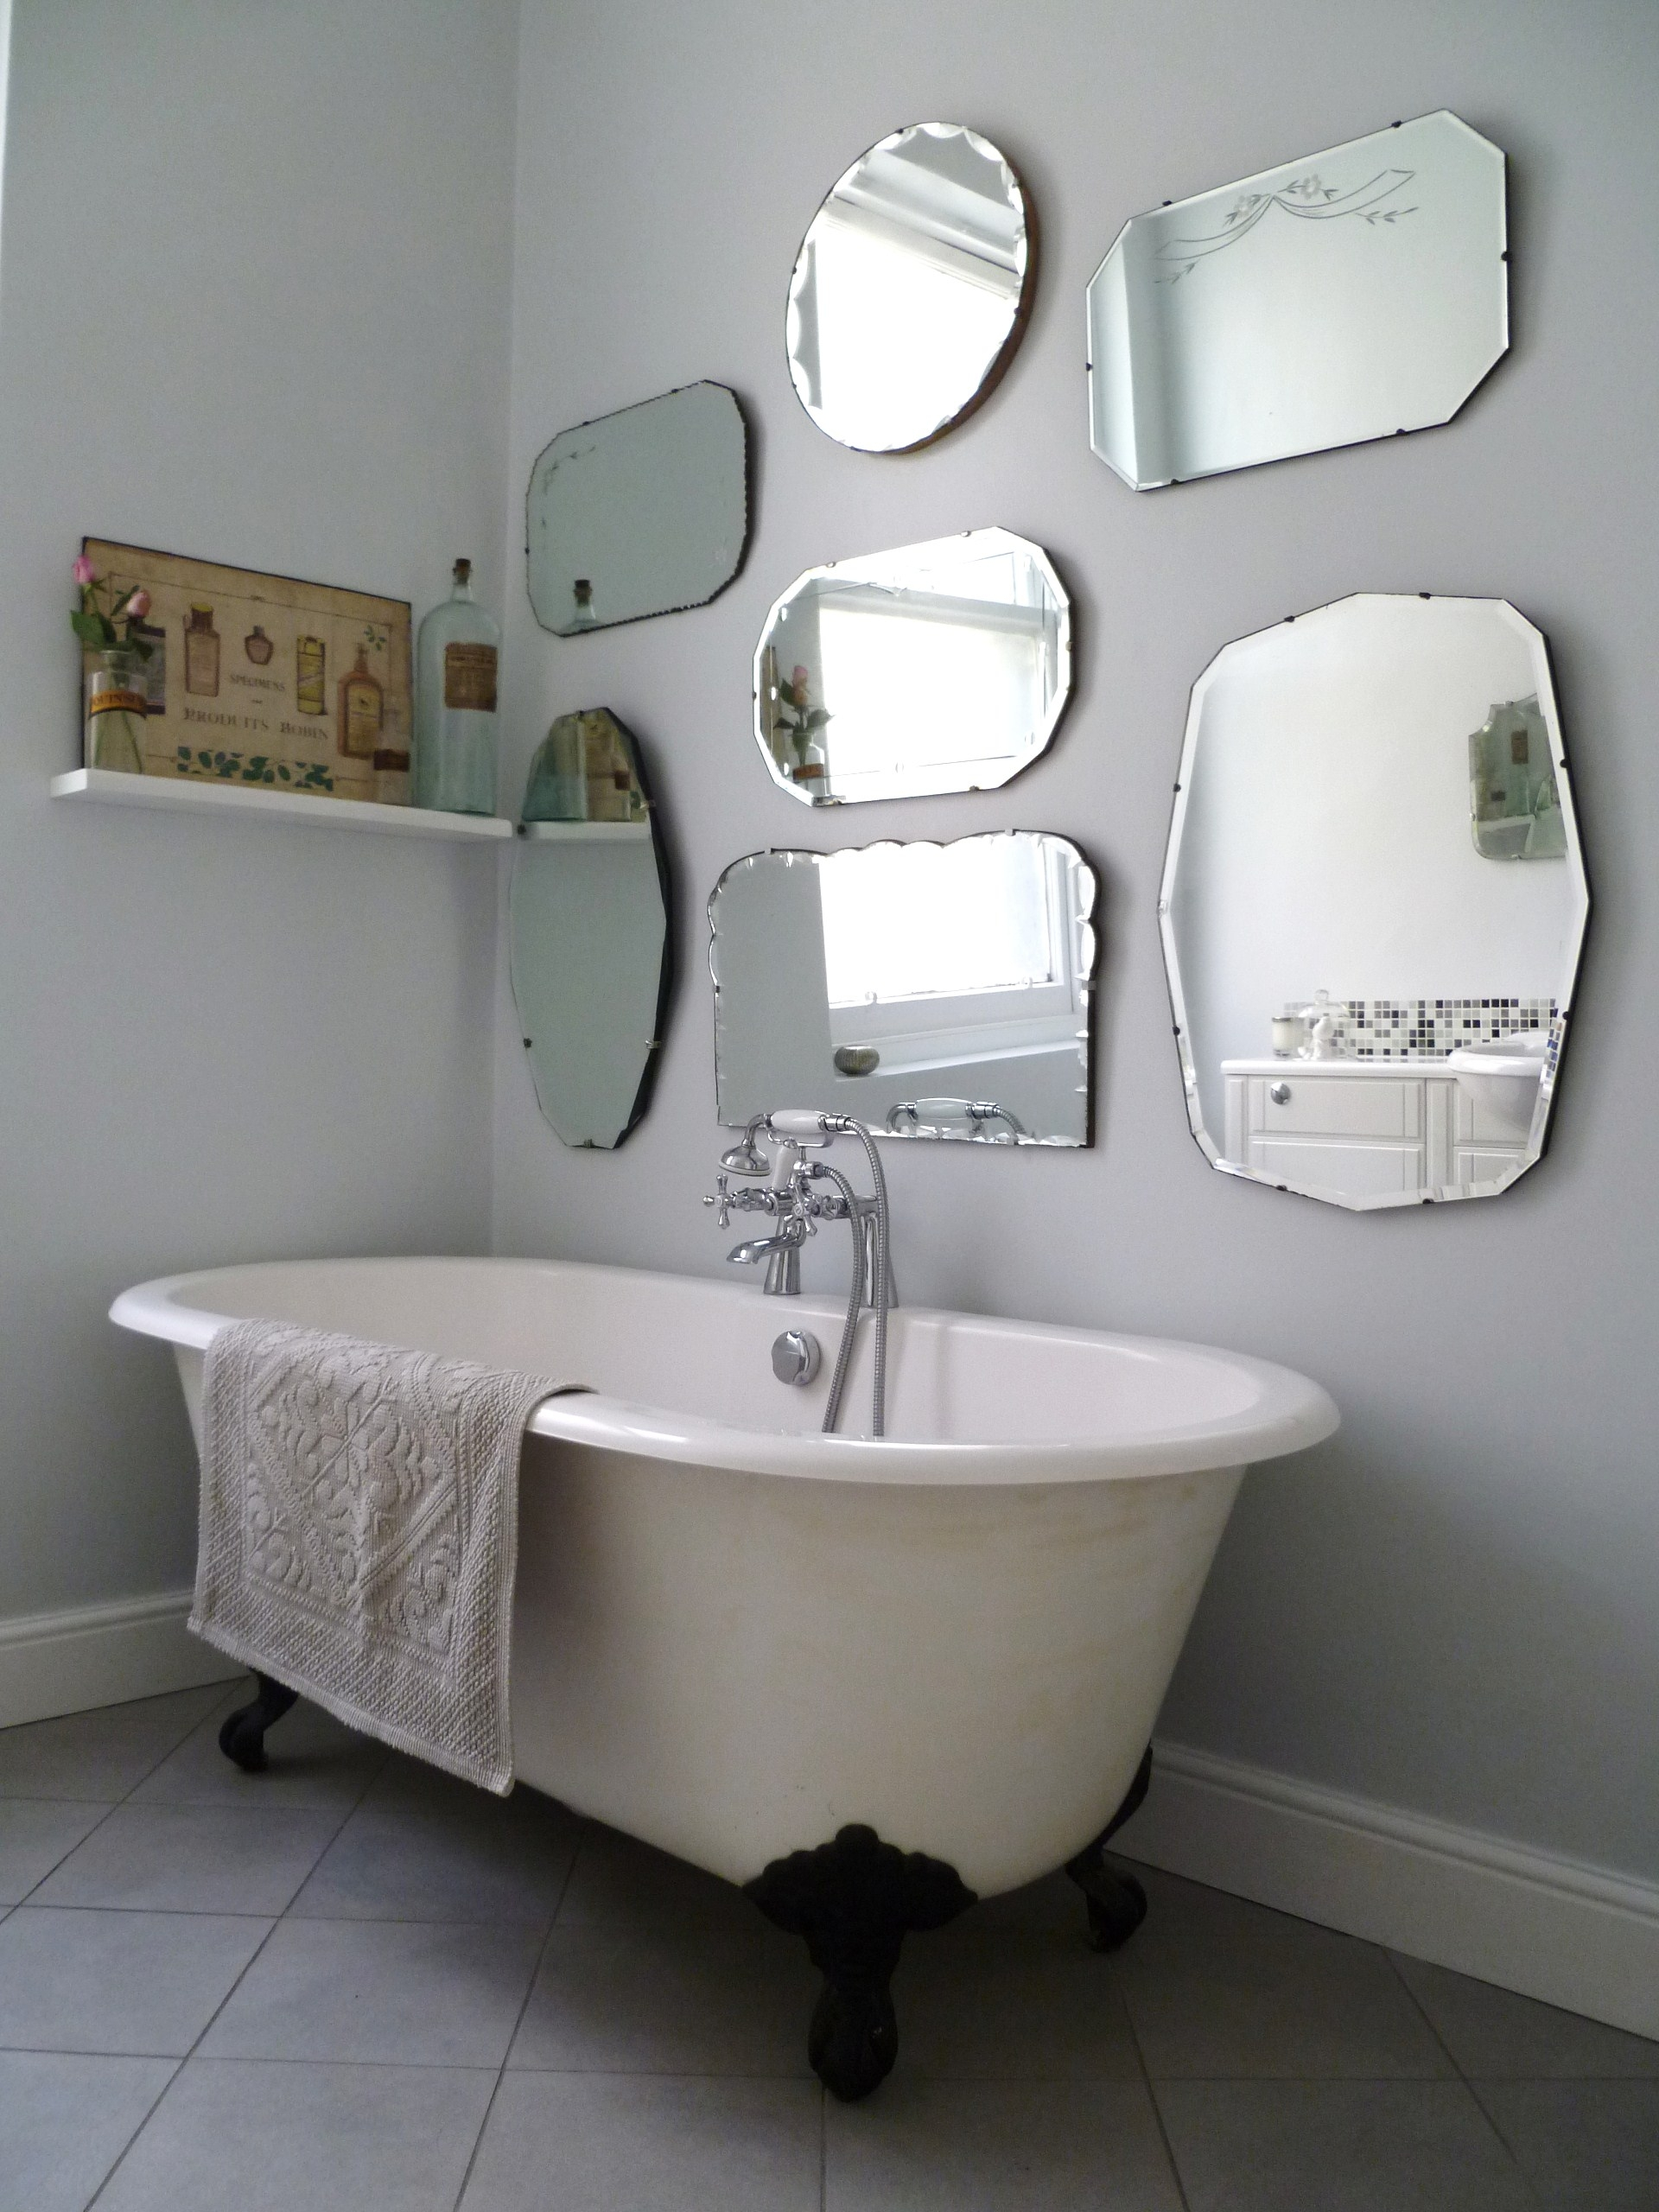 How To Hang A Display Of Vintage Mirrors Mirror Walls Grey And Pertaining To Antique Style Mirrors Wall (Image 6 of 15)